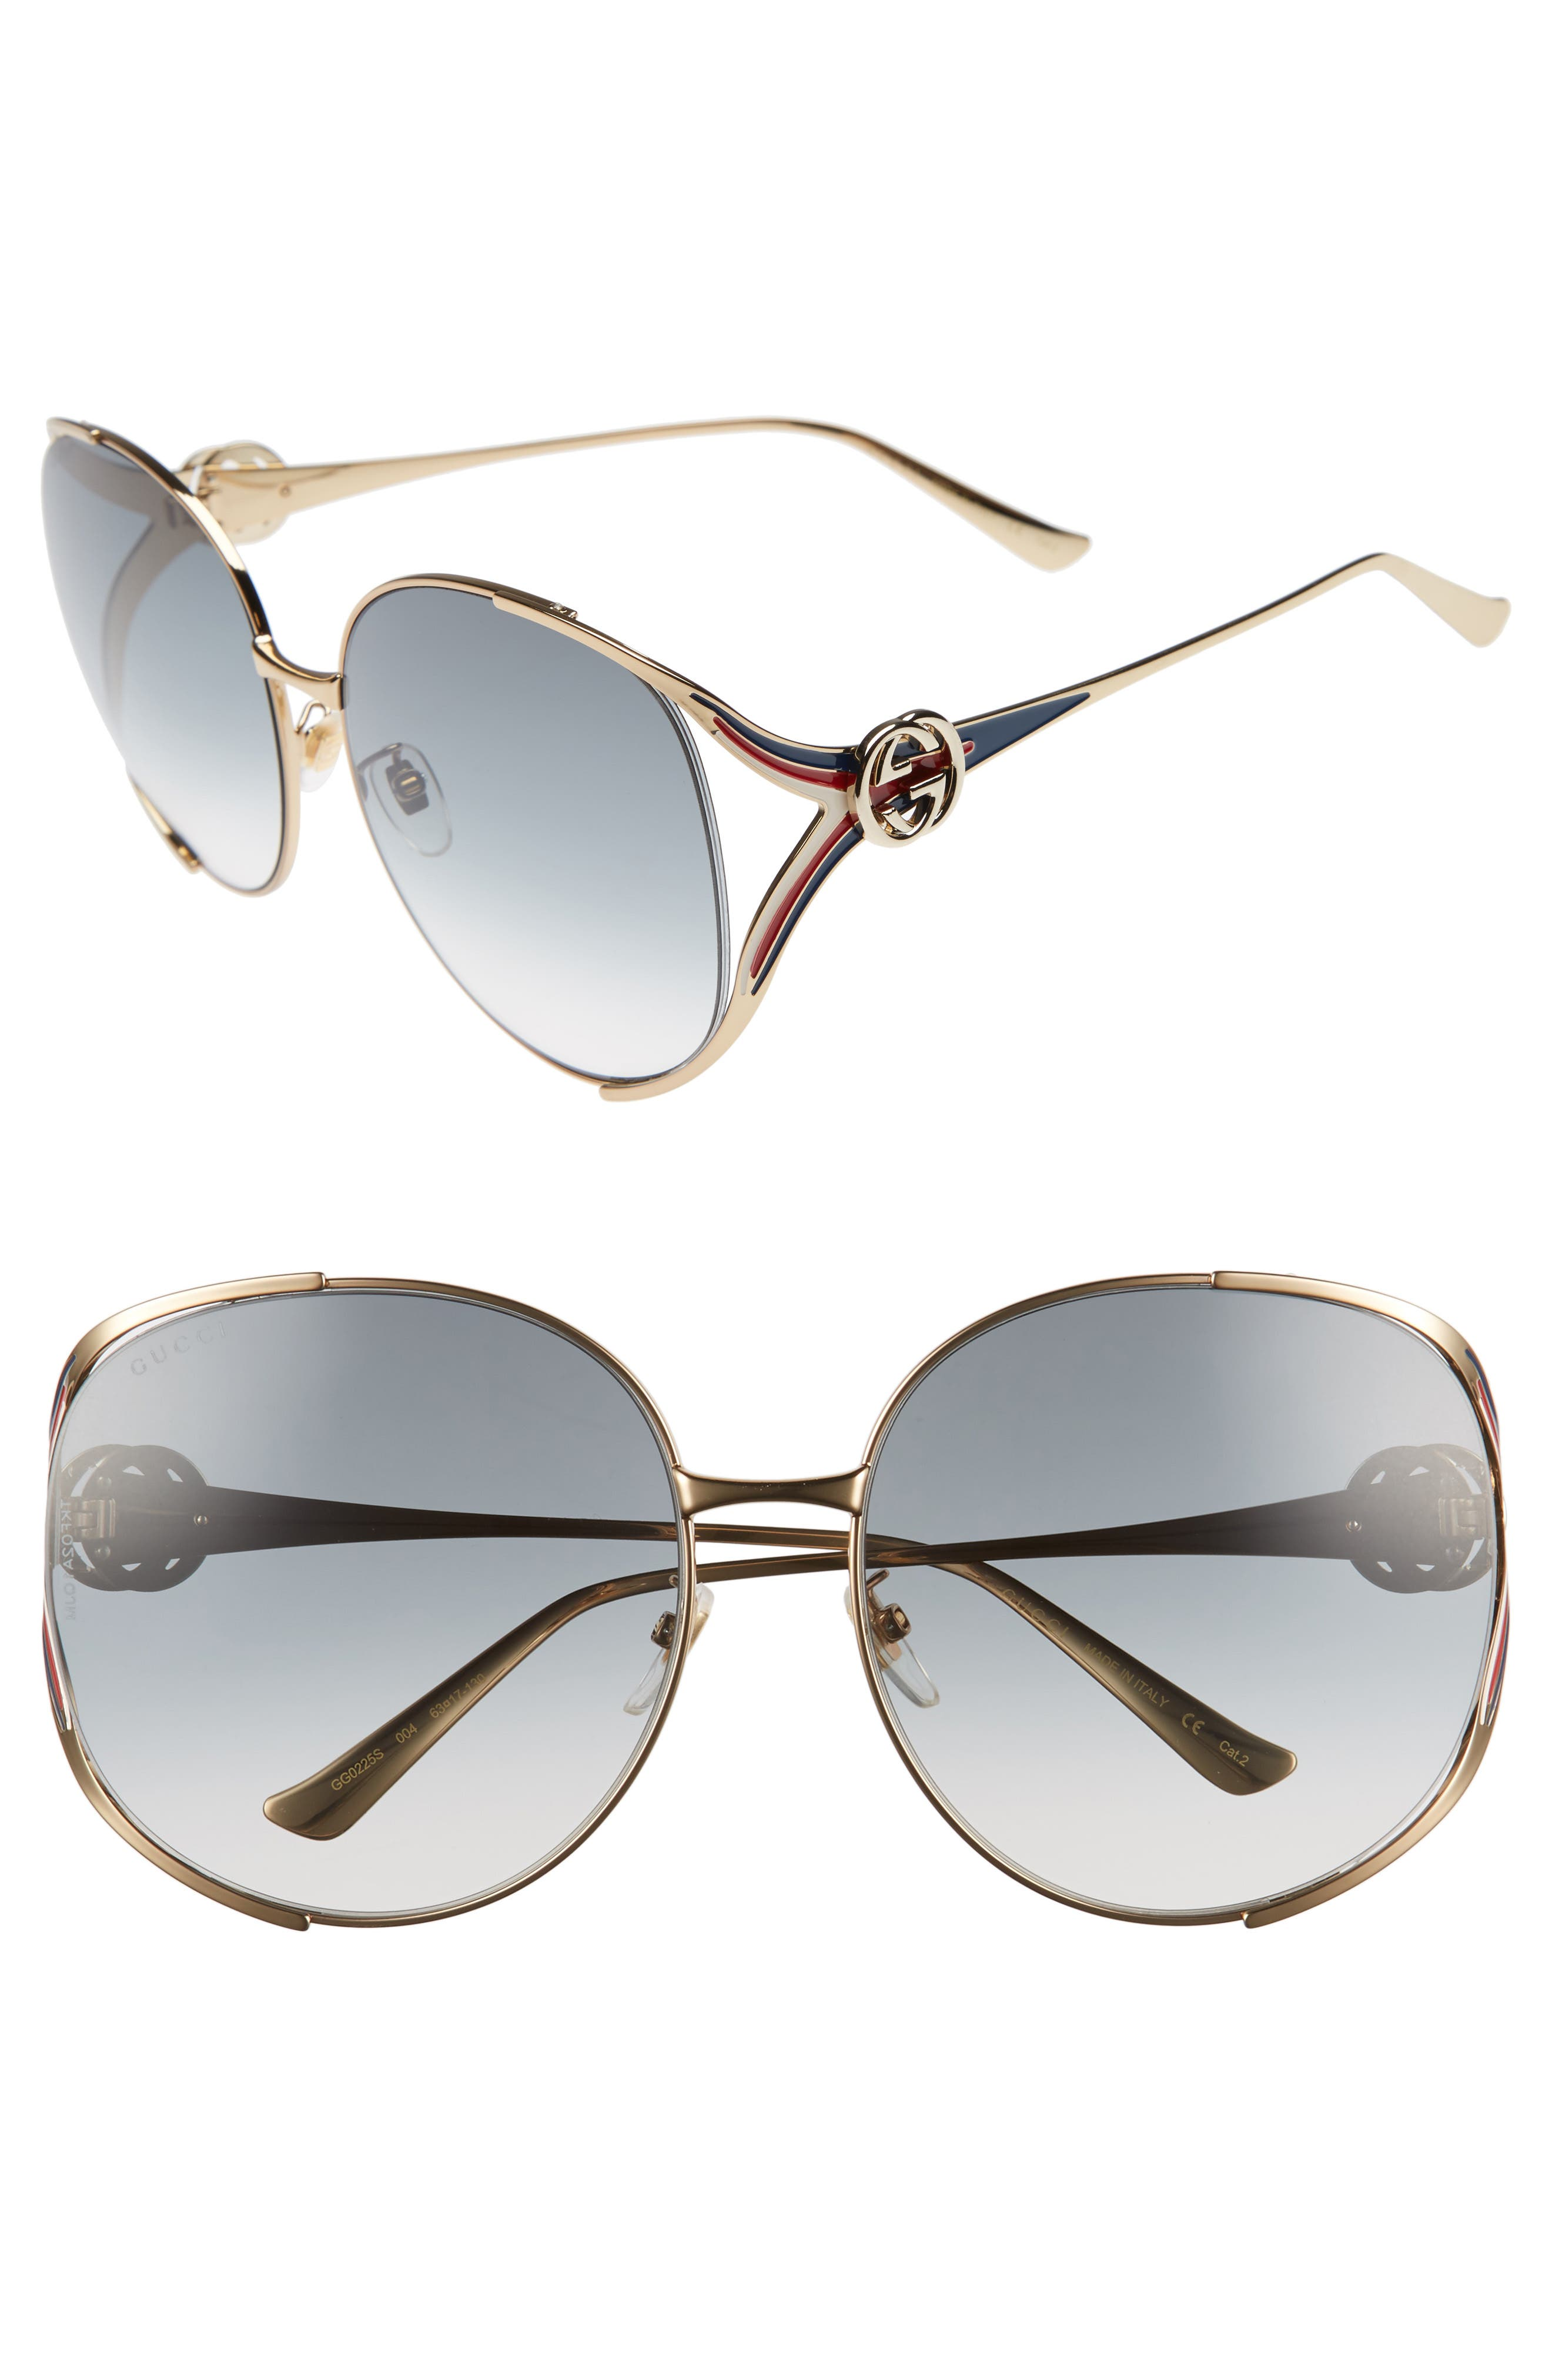 63mm Open Temple Sunglasses,                         Main,                         color, GOLD/ GREY